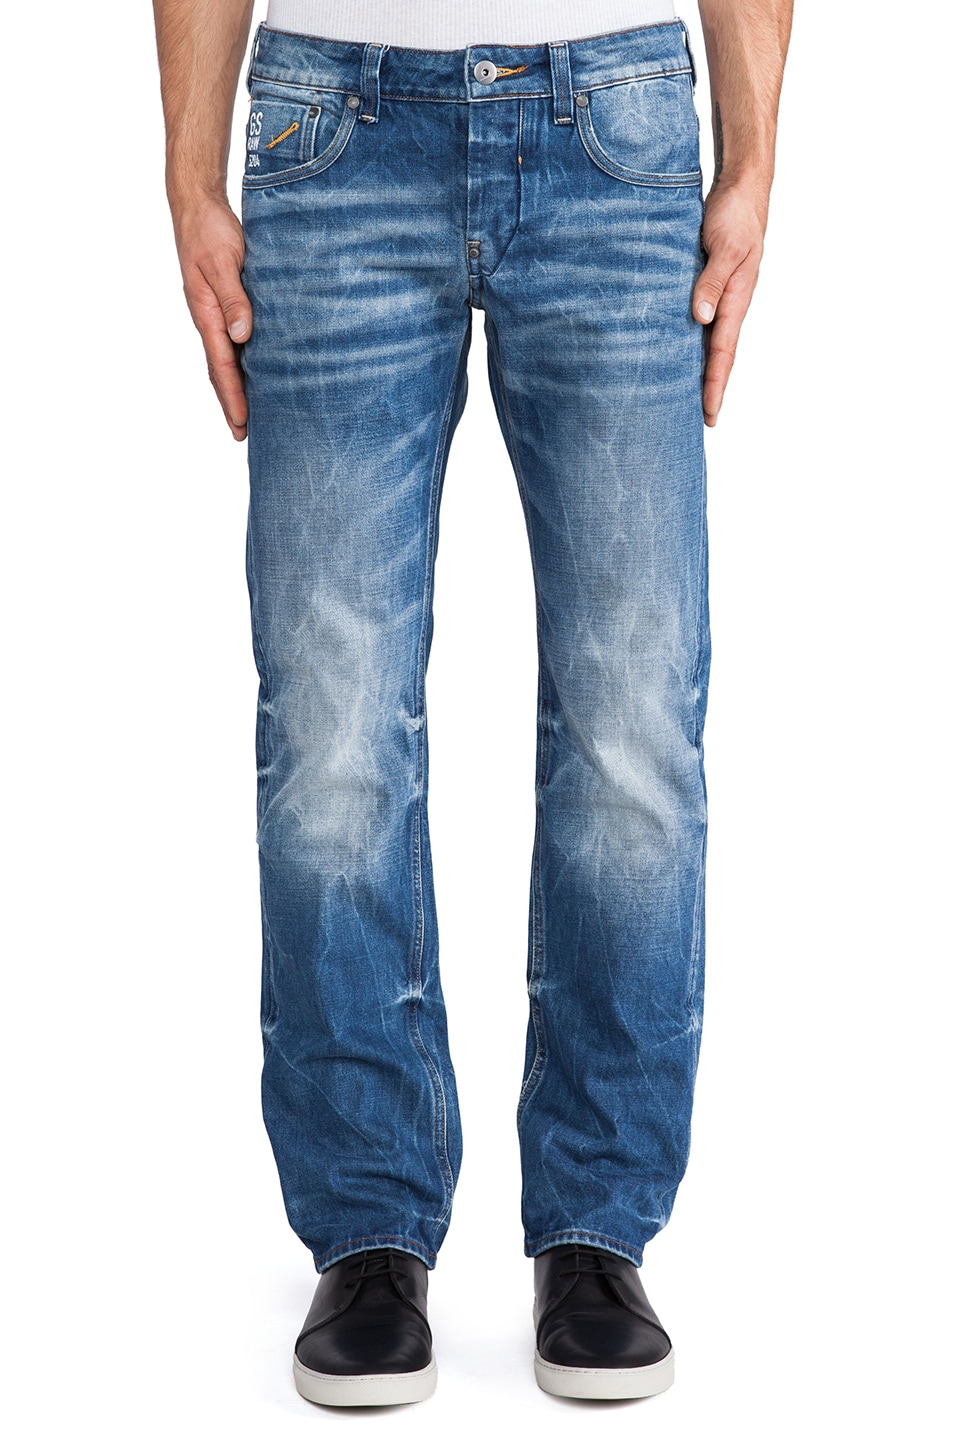 G-Star Attacc Low Straight Sheldy Denim in Medium Aged